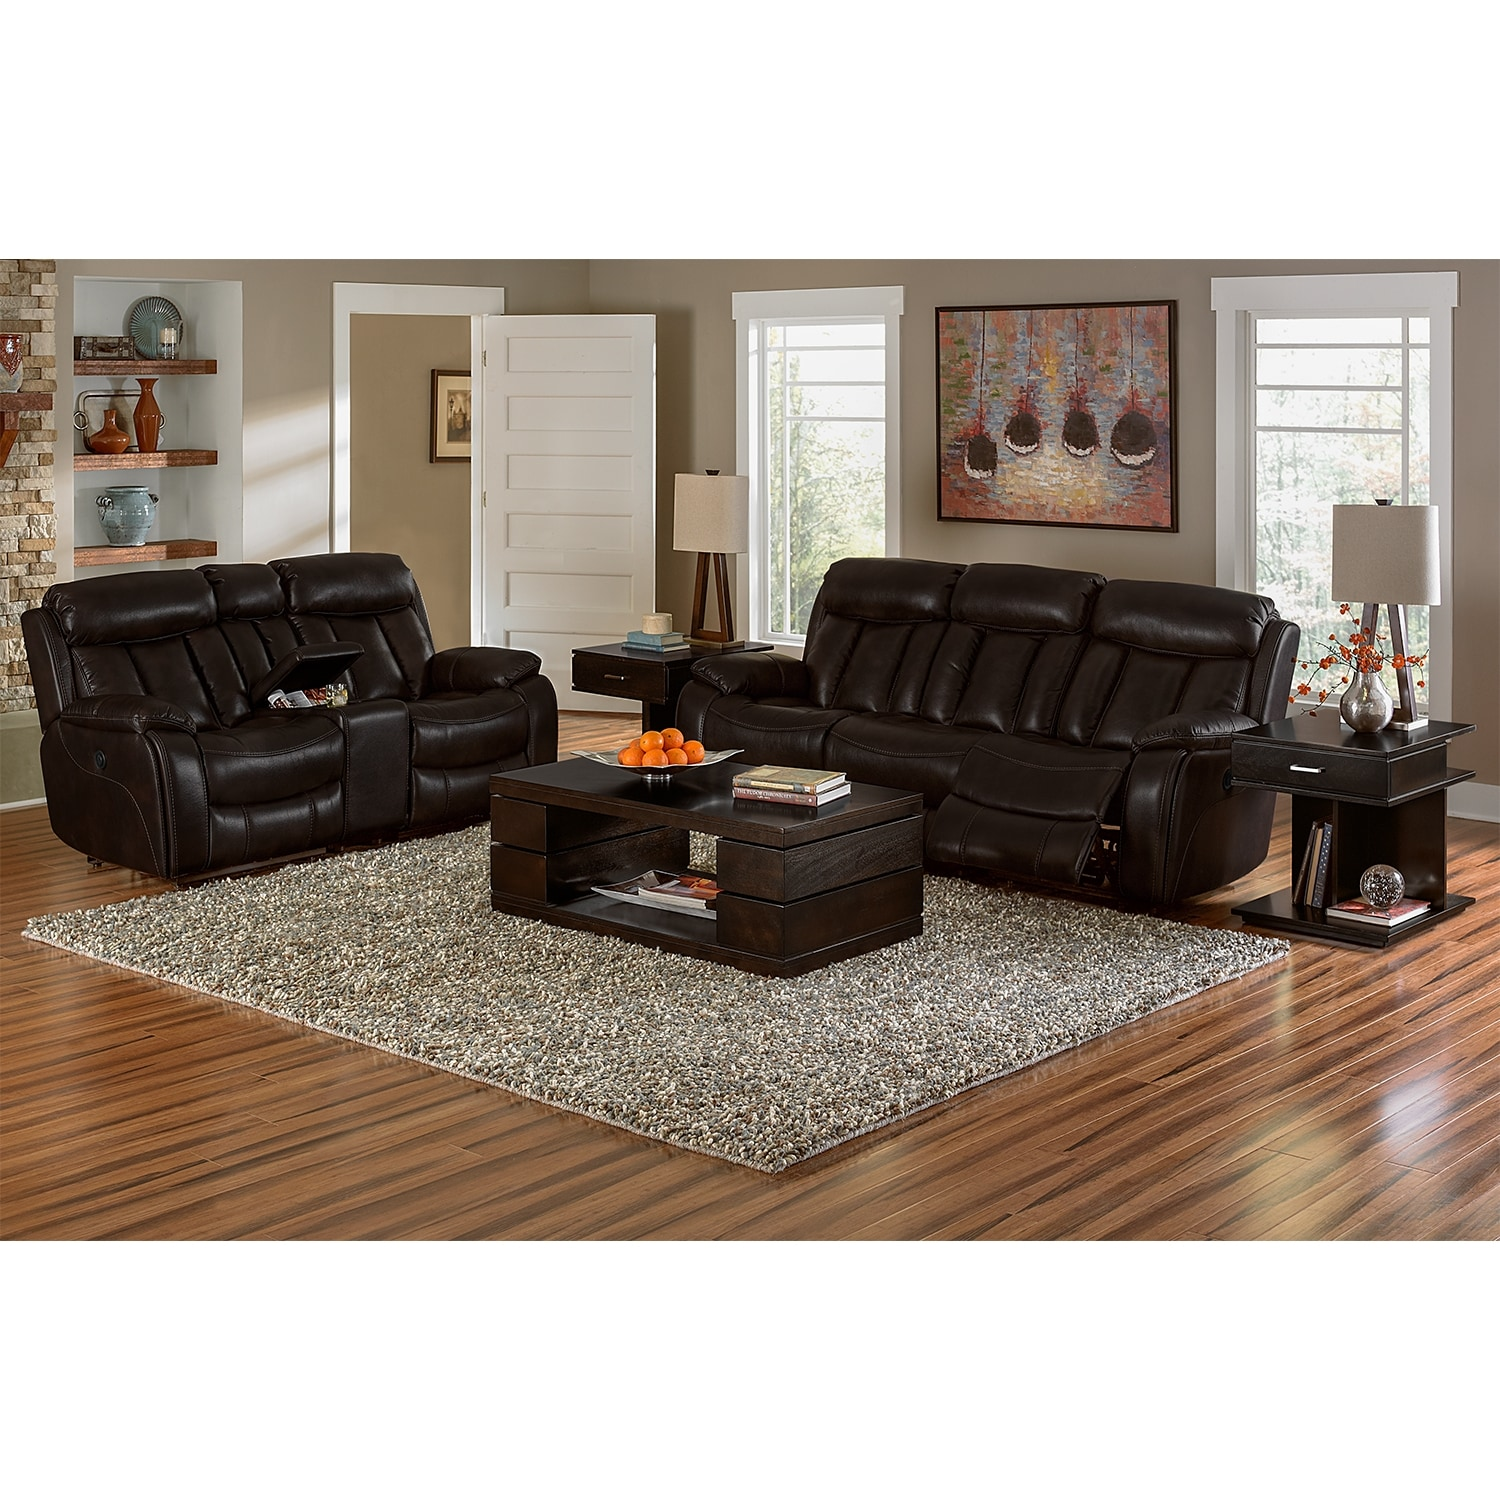 Diablo power reclining sofa walnut american signature furniture click to change image geotapseo Image collections